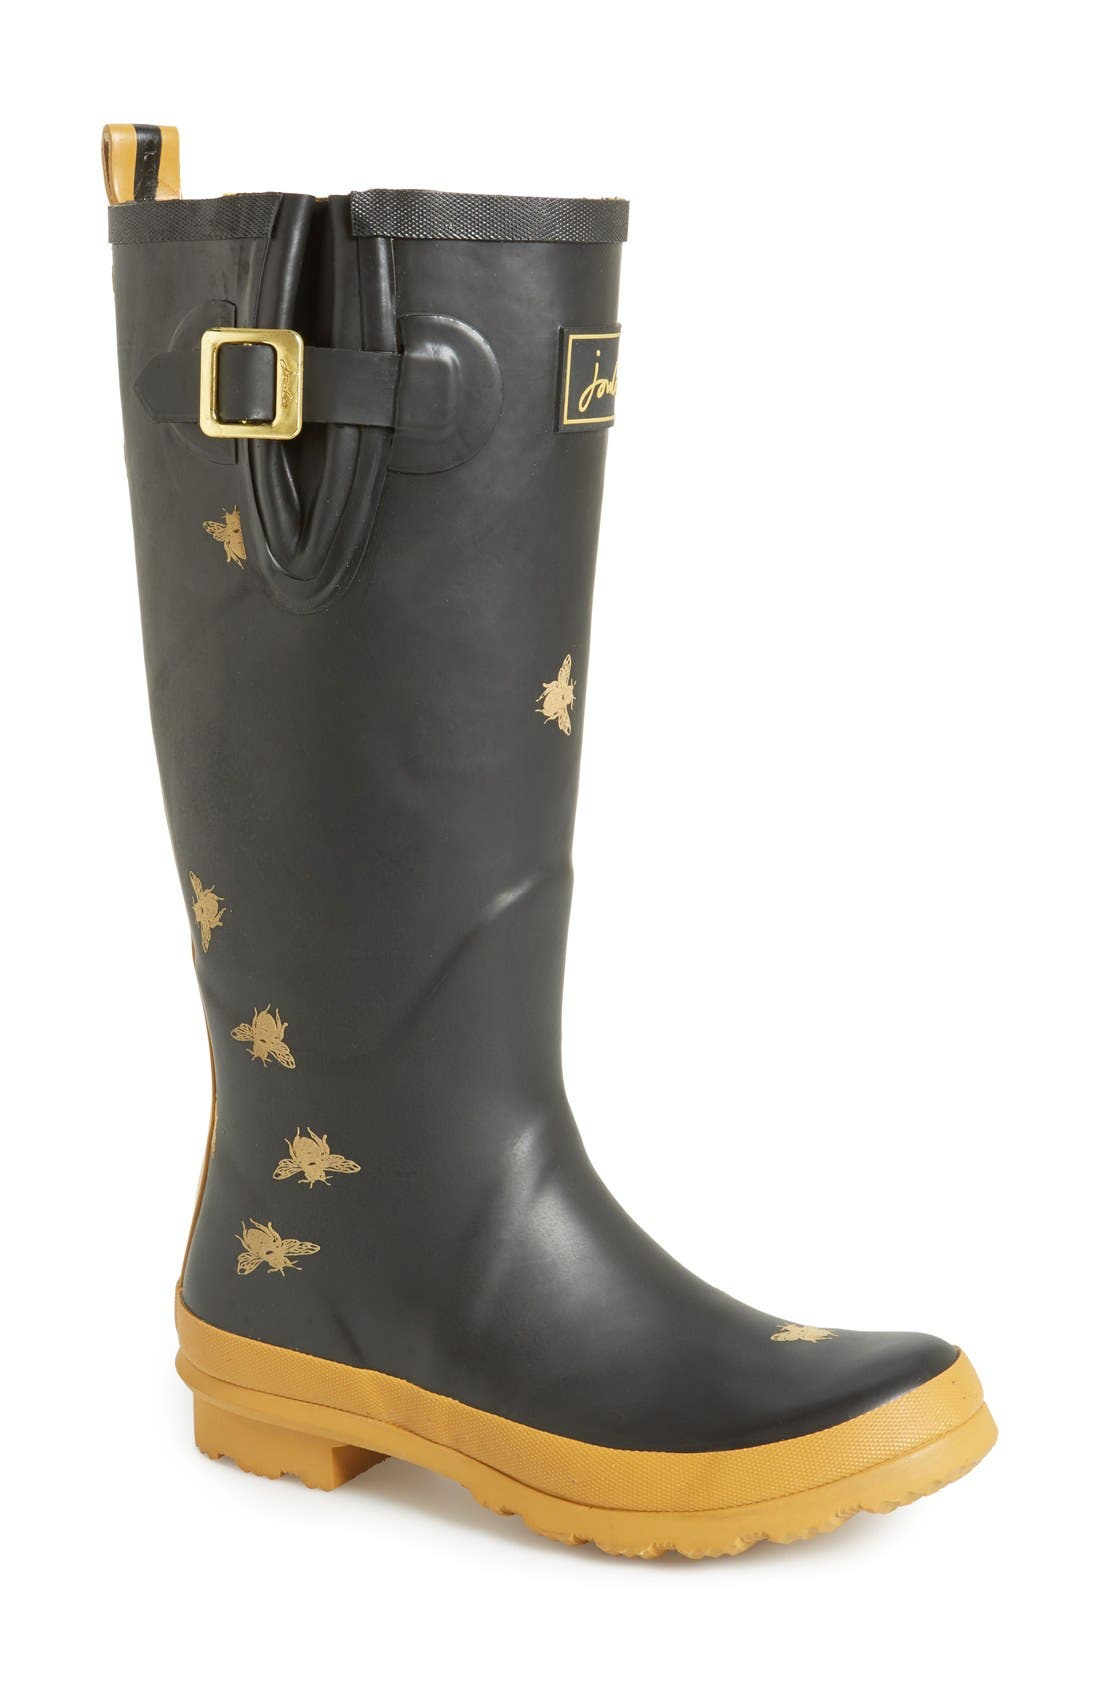 Main Image - Joules 'Wellyprint' Rain Boot (Women)